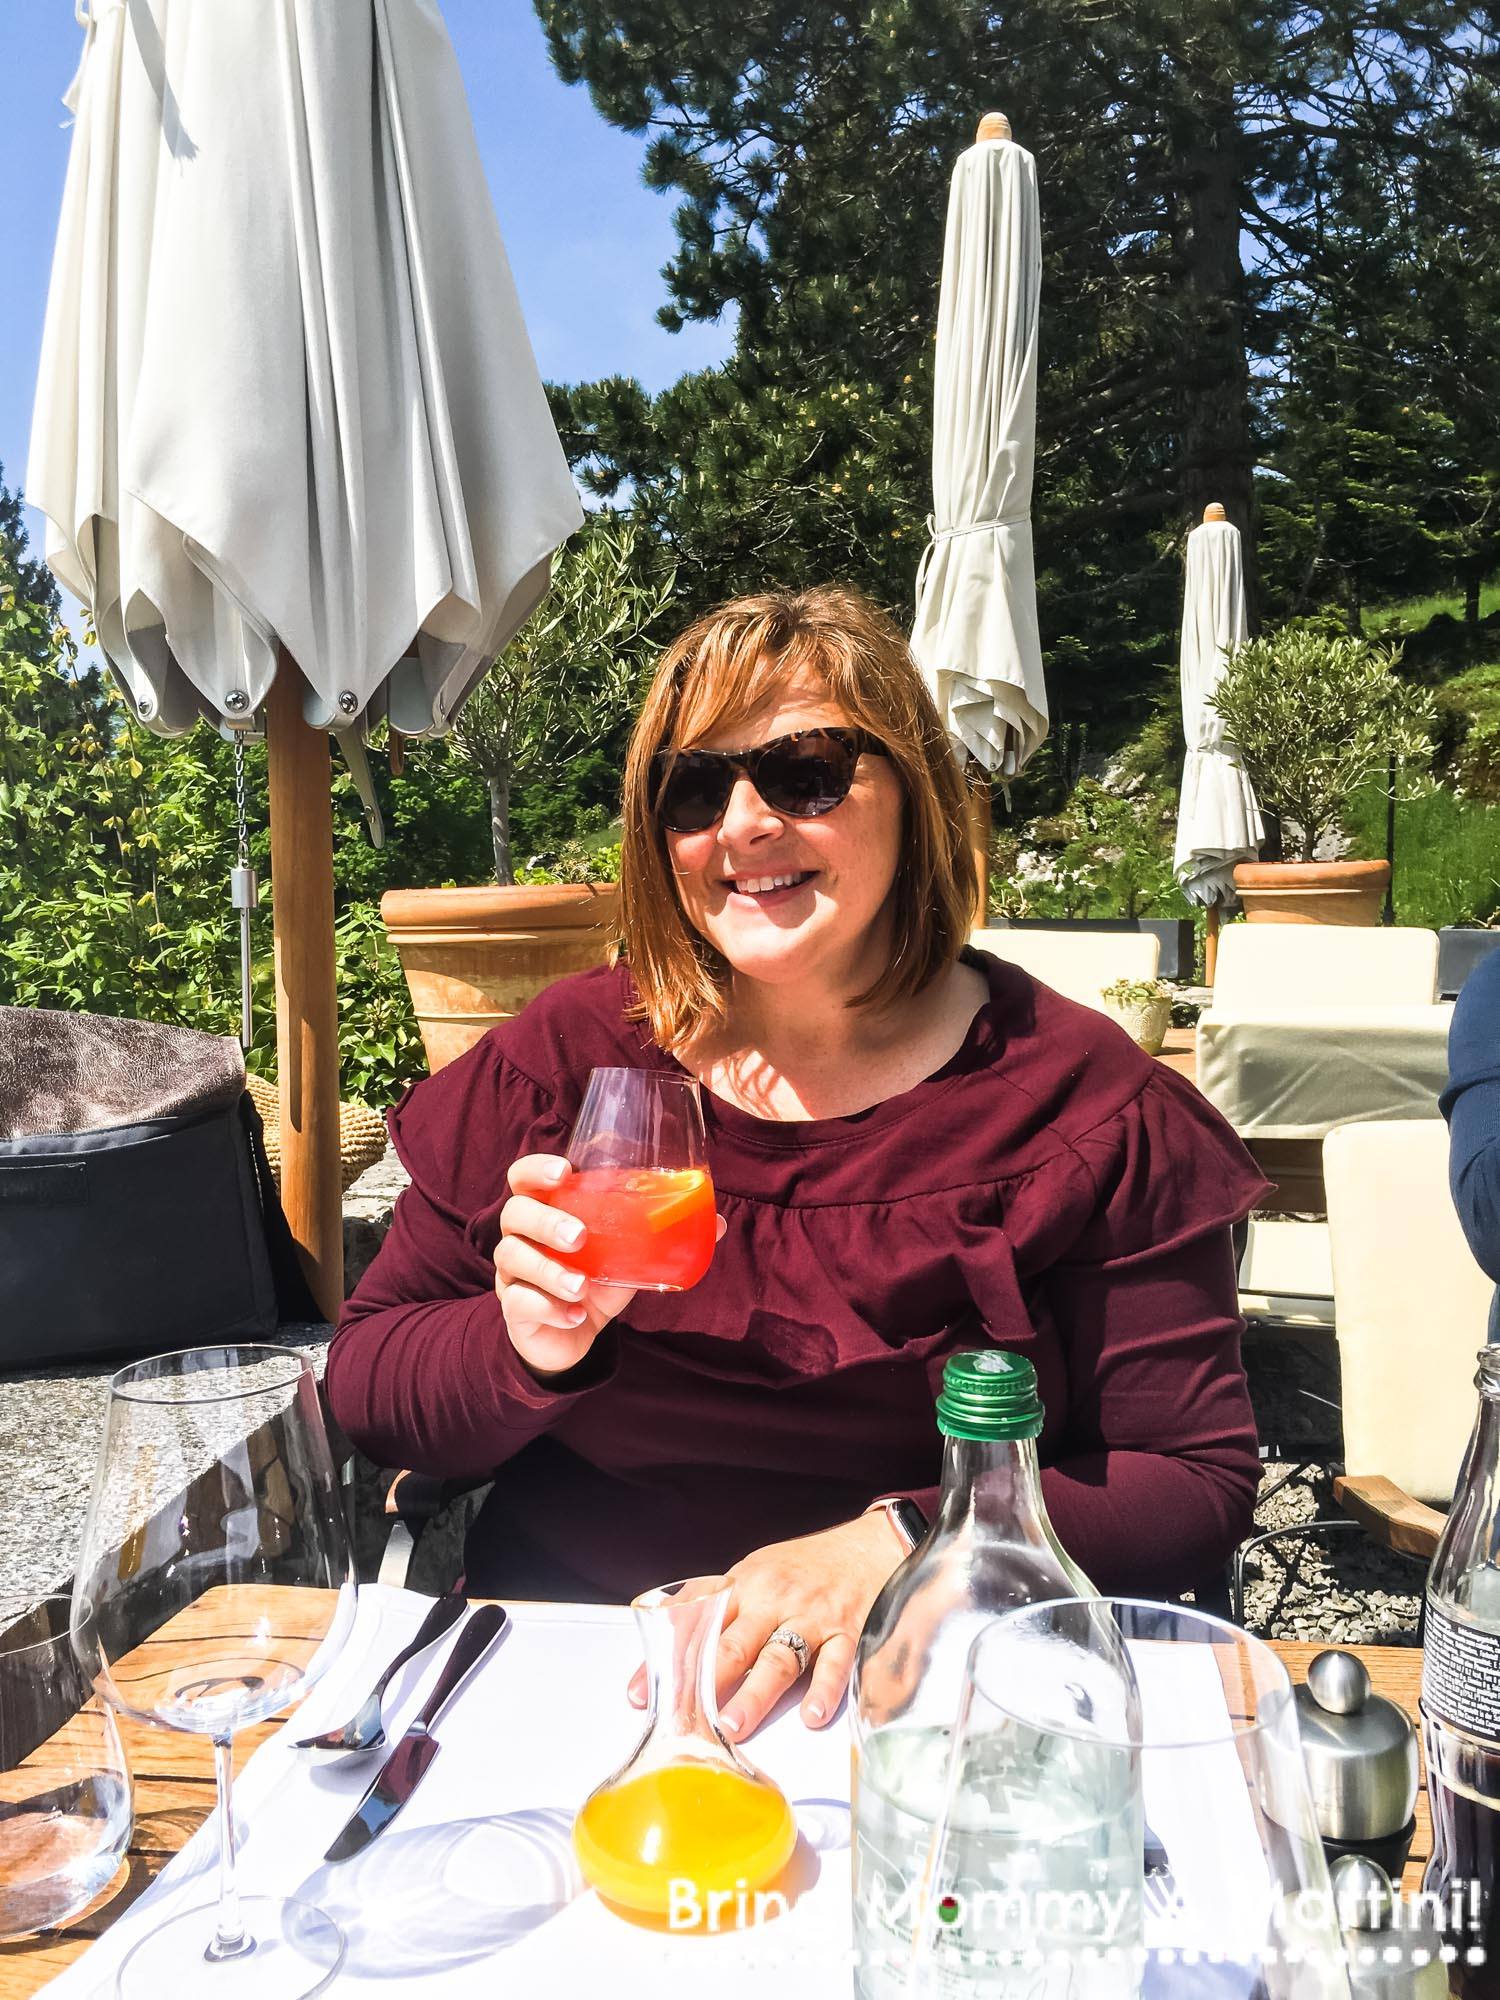 Having a campari and orange juice with my lunch.